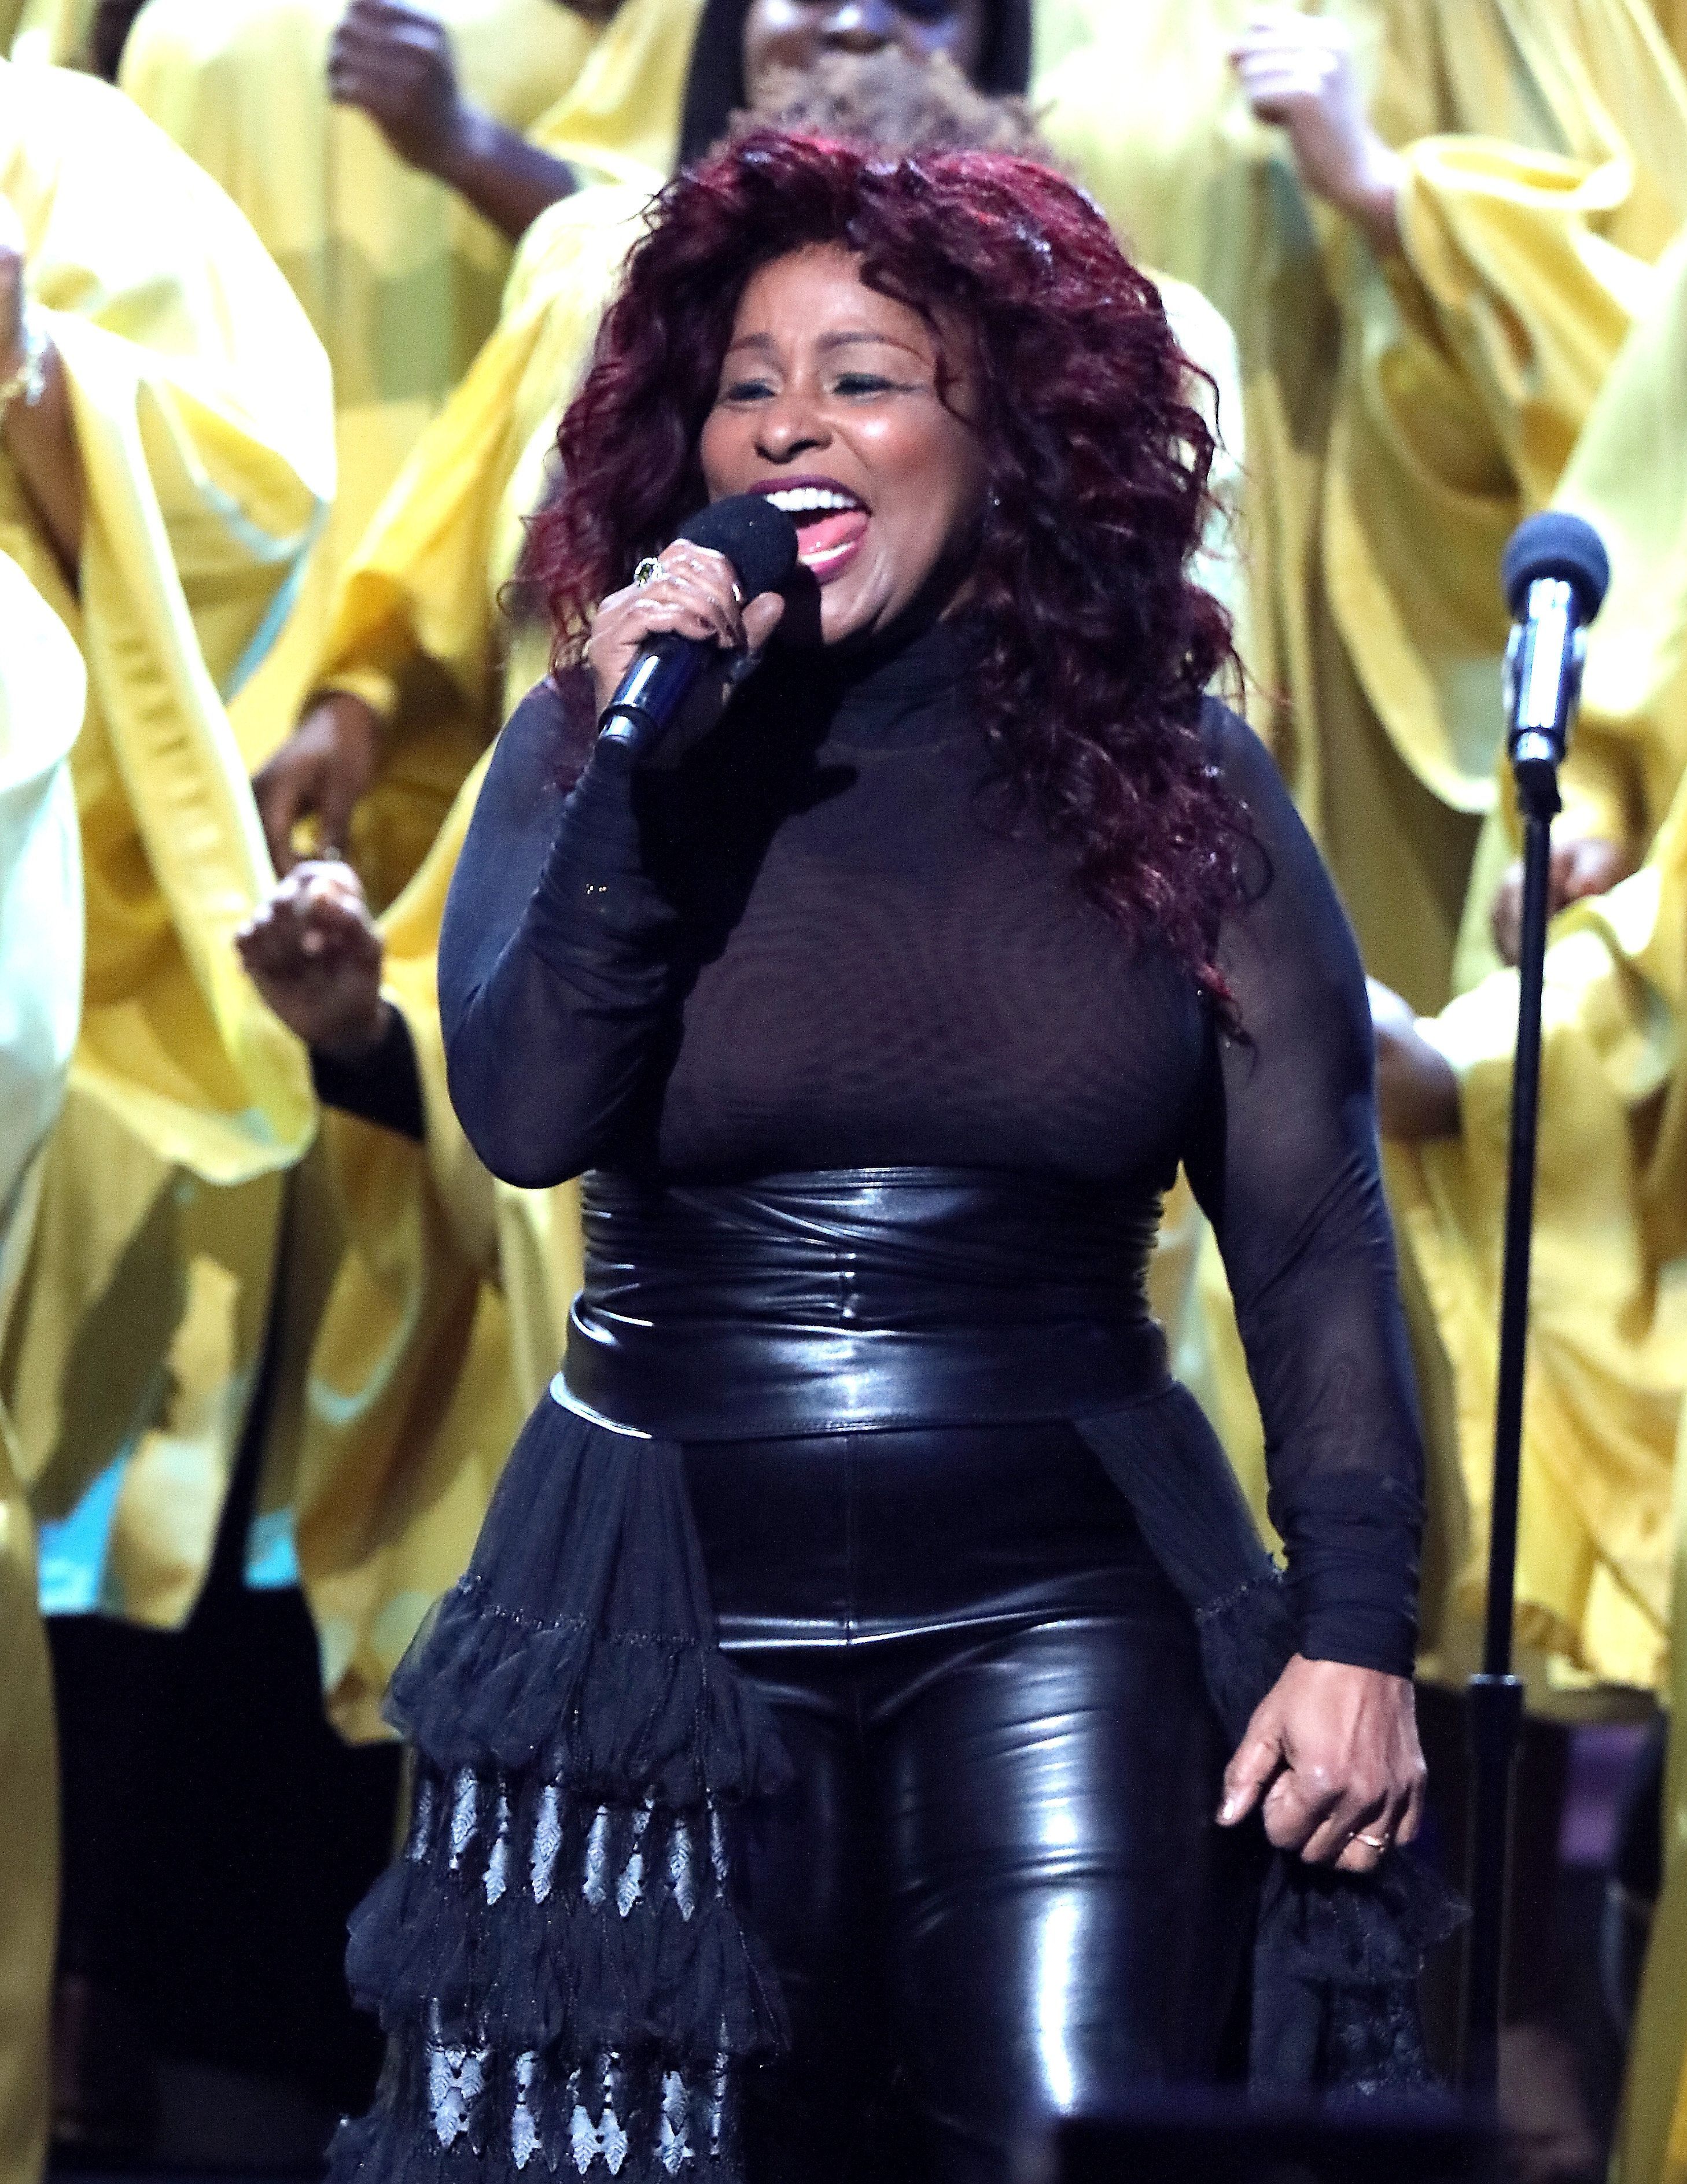 LOS ANGELES, CA - JANUARY 09:  Singer-songwriter Chaka Khan performs onstage during BET Celebration Of Gospel 2016 at Orpheum Theatre on January 9, 2016 in Los Angeles, California.  (Photo by Mark Davis/BET/Getty Images for BET)